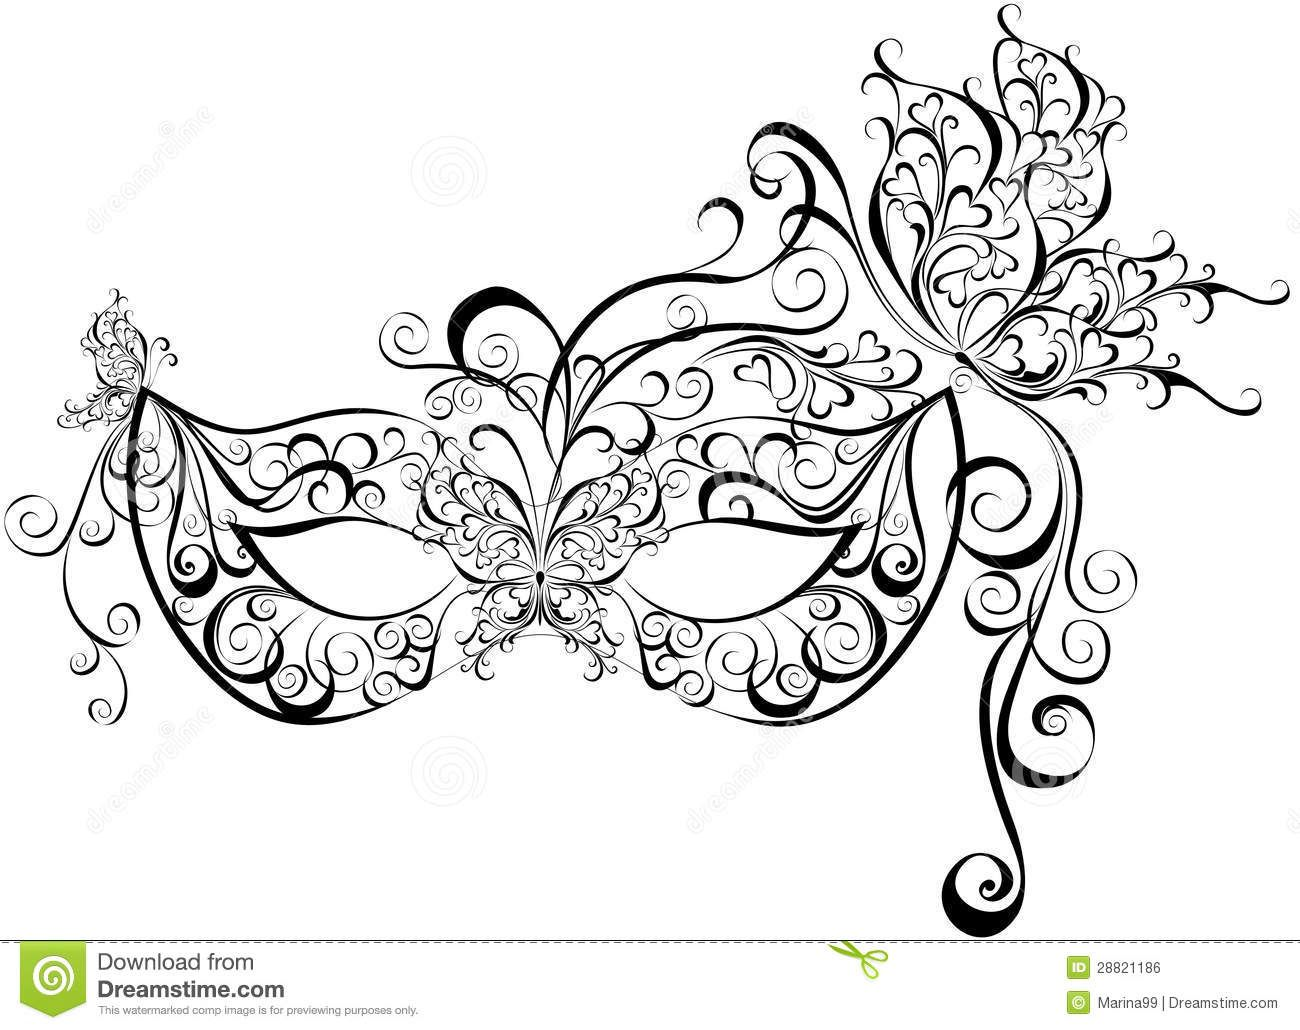 Masques pour une mascarade image libre de droits image 28821186 pretty little things - Coloriage masque ...